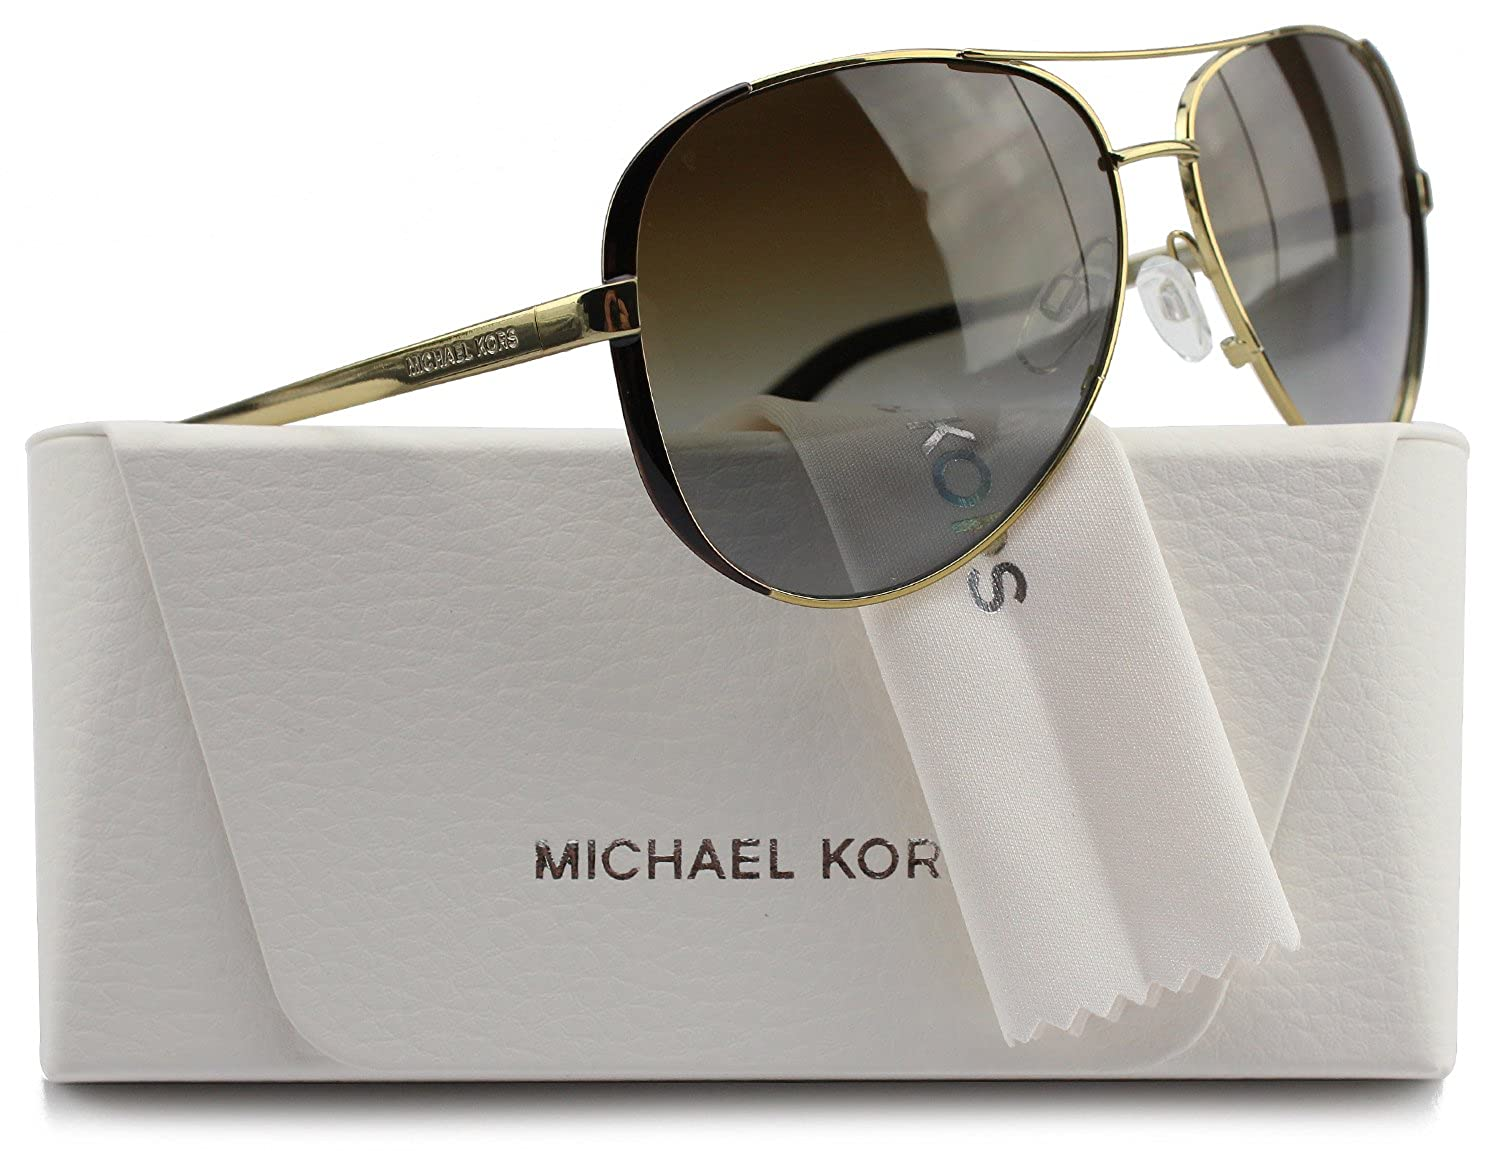 263aae583bd Amazon.com  Michael Kors MK5004 Chelsea Aviator Polarized Sunglasses Gold  w Brown Gradient (1014 T5) MK 5004 1014T5 59mm Authentic  Clothing